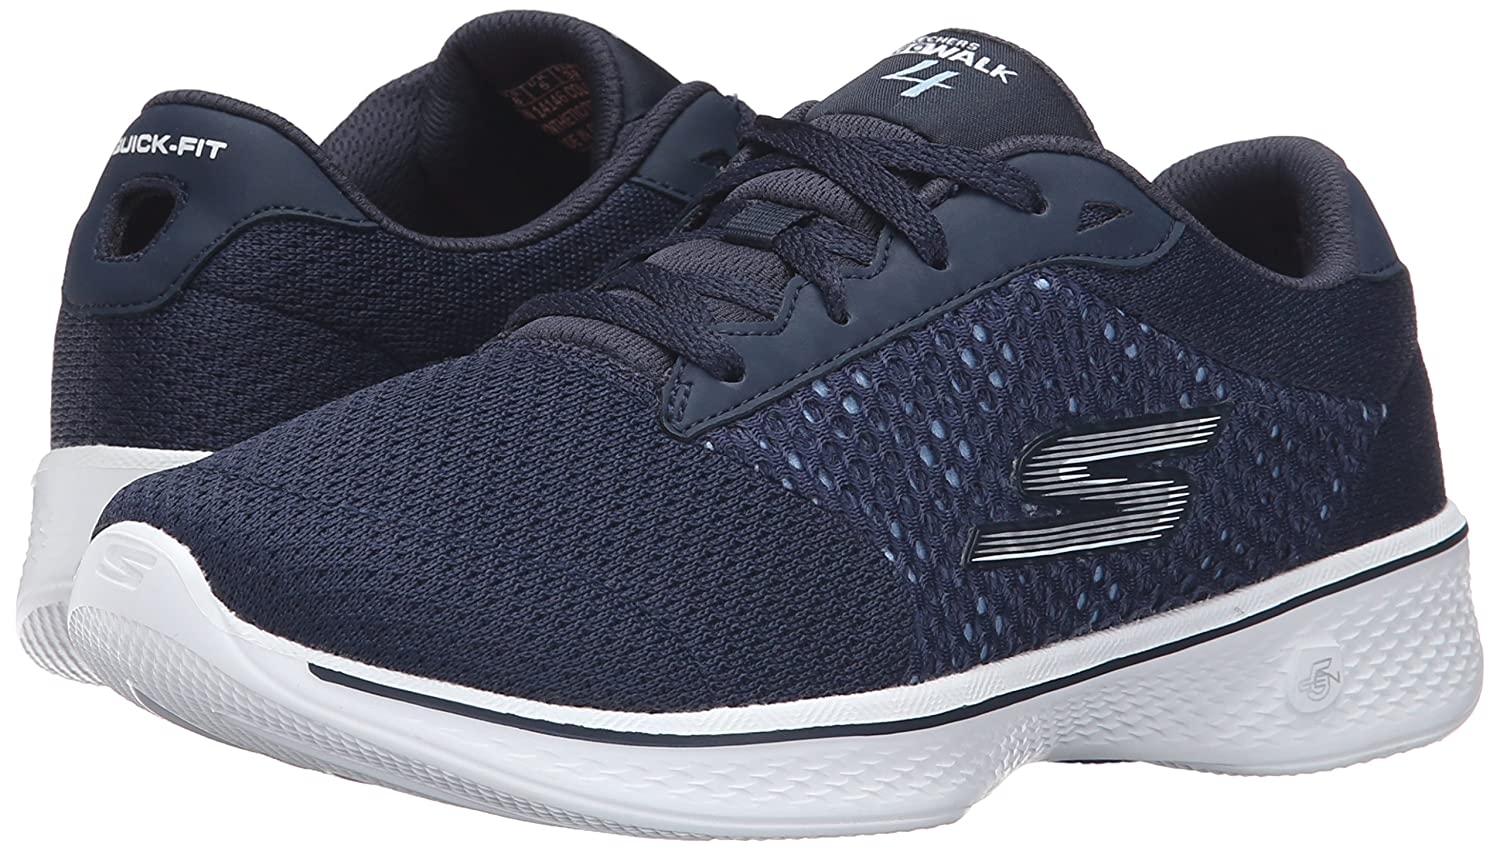 Skechers Performance Women's Go Walk 4 Exceed Lace-up Sneaker B01AH00V06 8.5 B(M) US|Navy/White